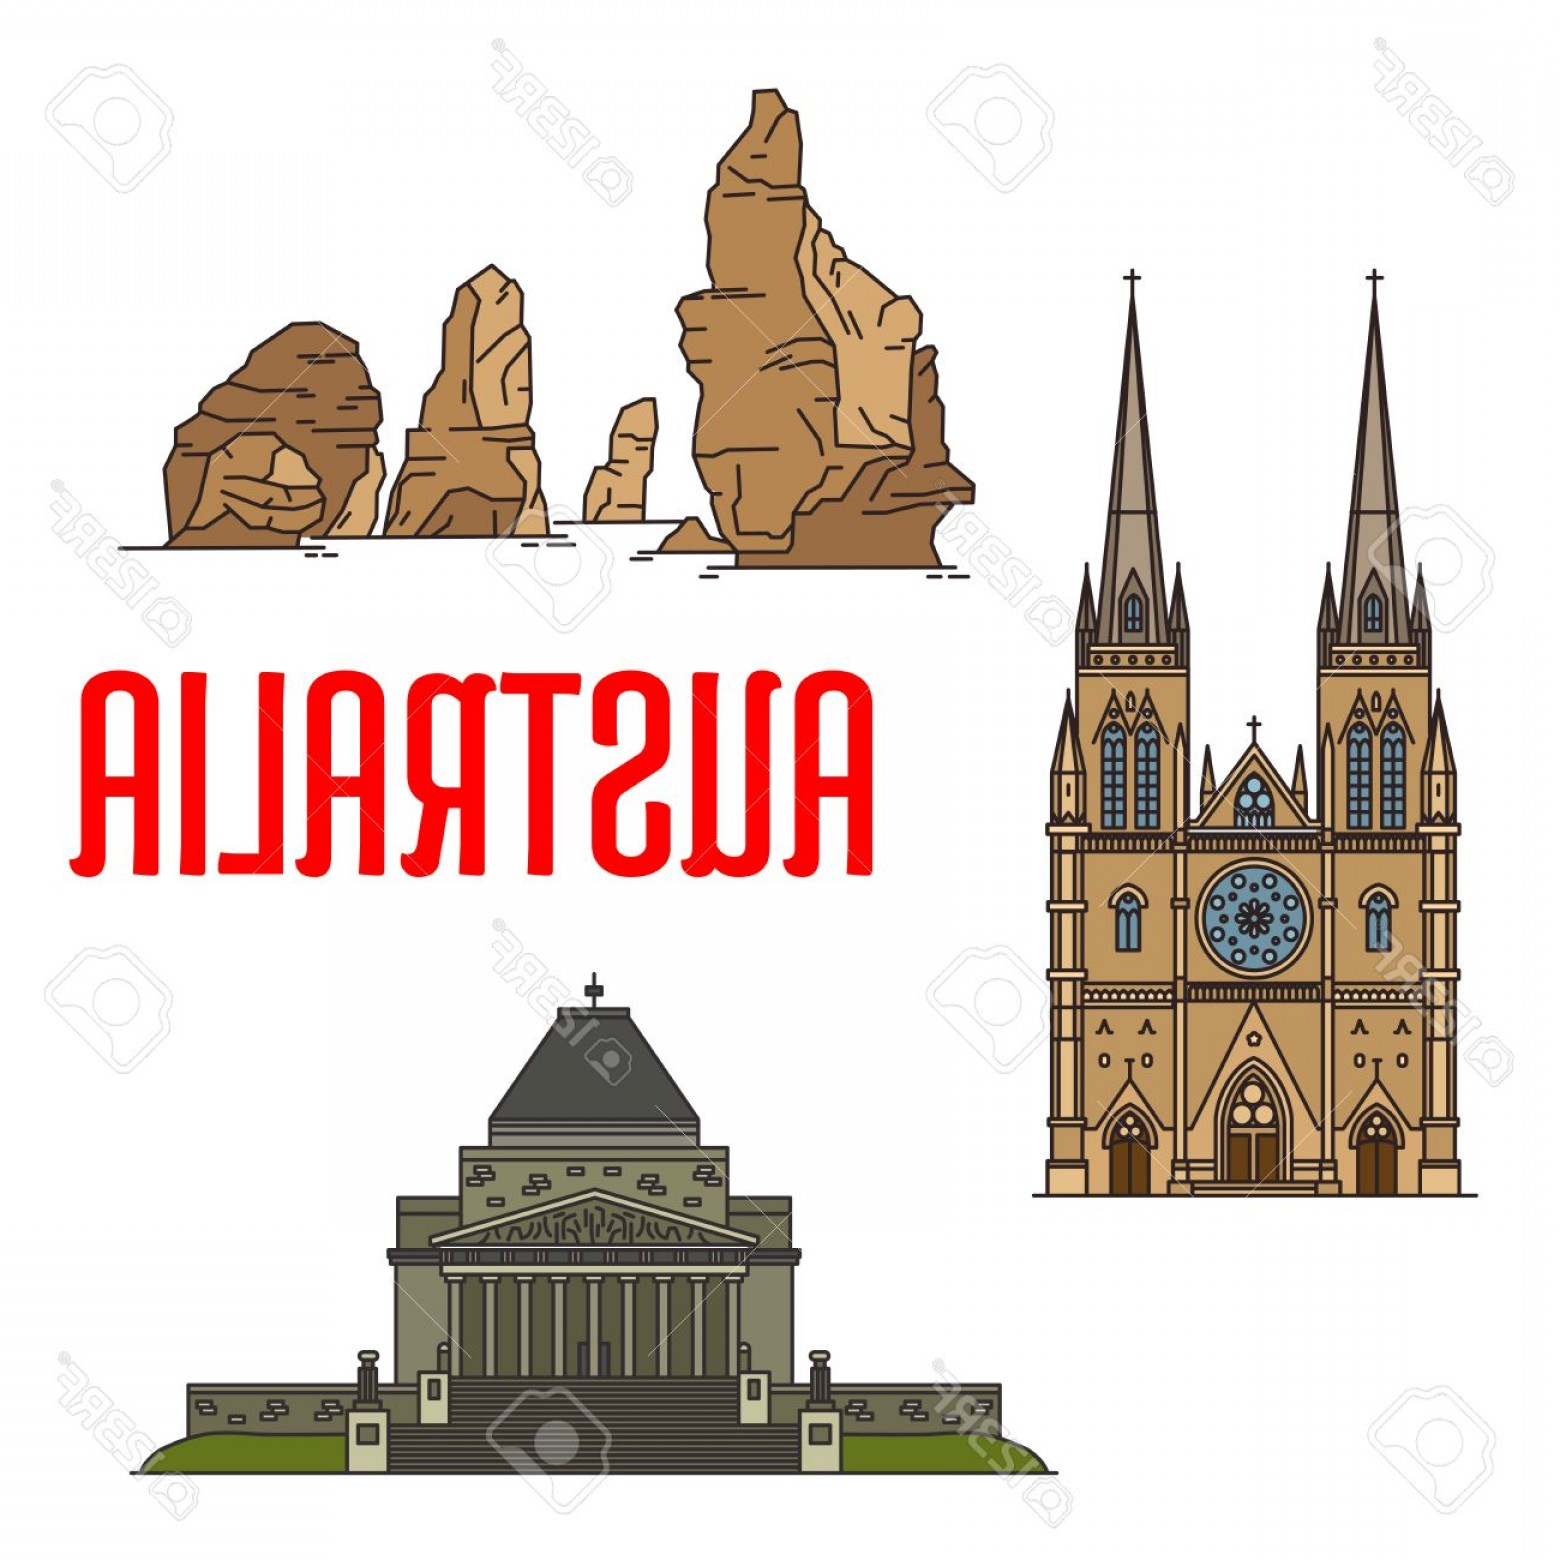 Salt Lake City Temple Vector: Photostock Vector Australian Buildings And Landmarks Icons Vector St Mary Cathedral Twelve Apostles Rocks Shrine Of Re